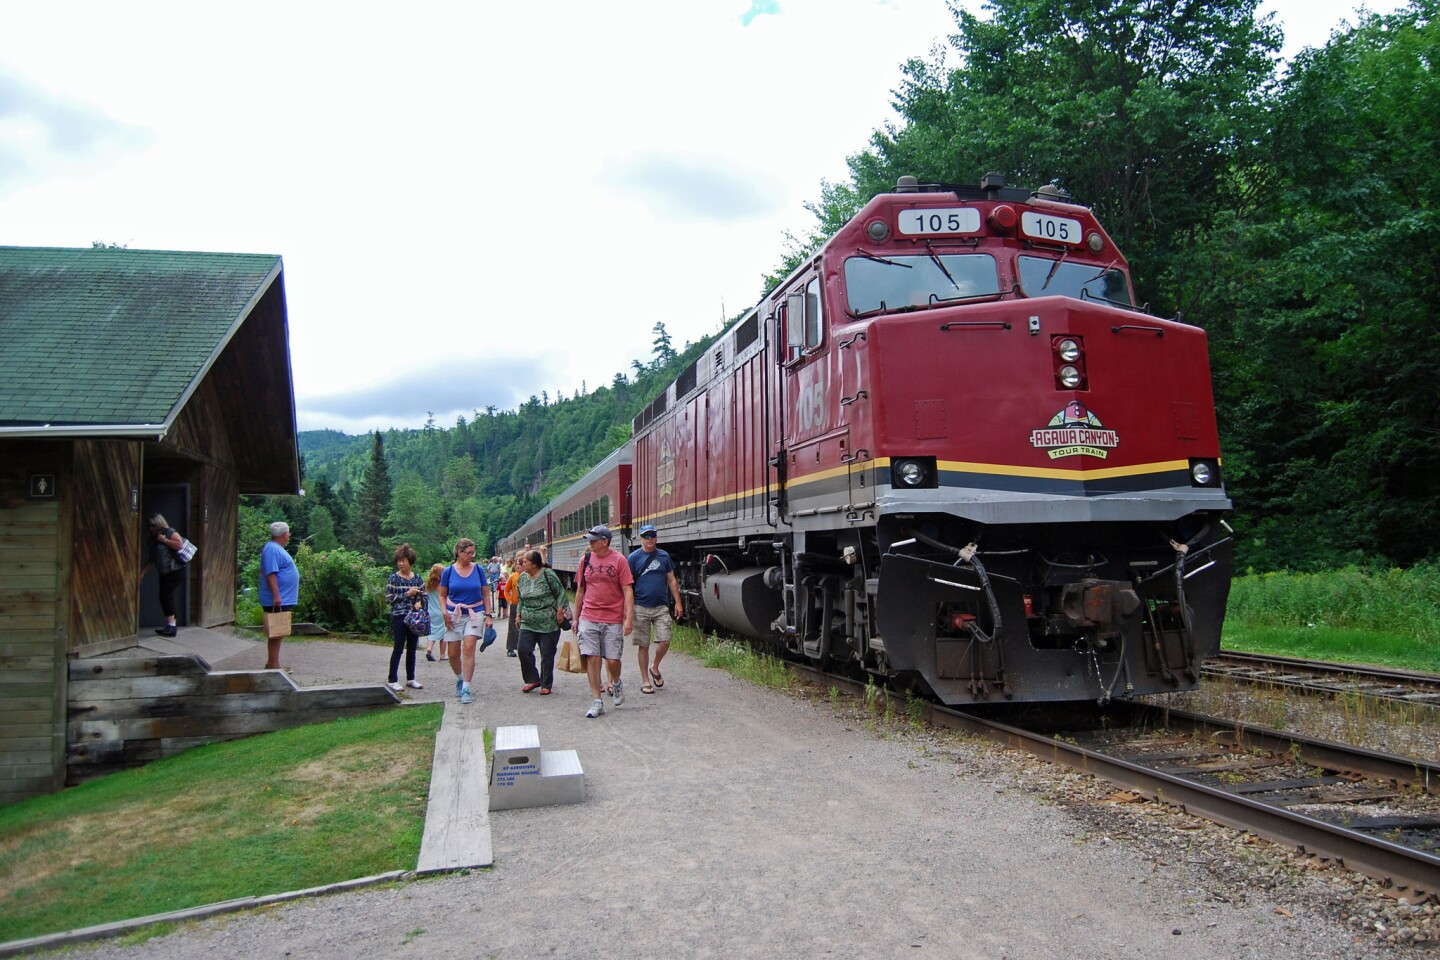 The tour train's arrival at Agawa Canyon Park means passengers have 90 minutes to relax, see the sights and hike the gravel trails.